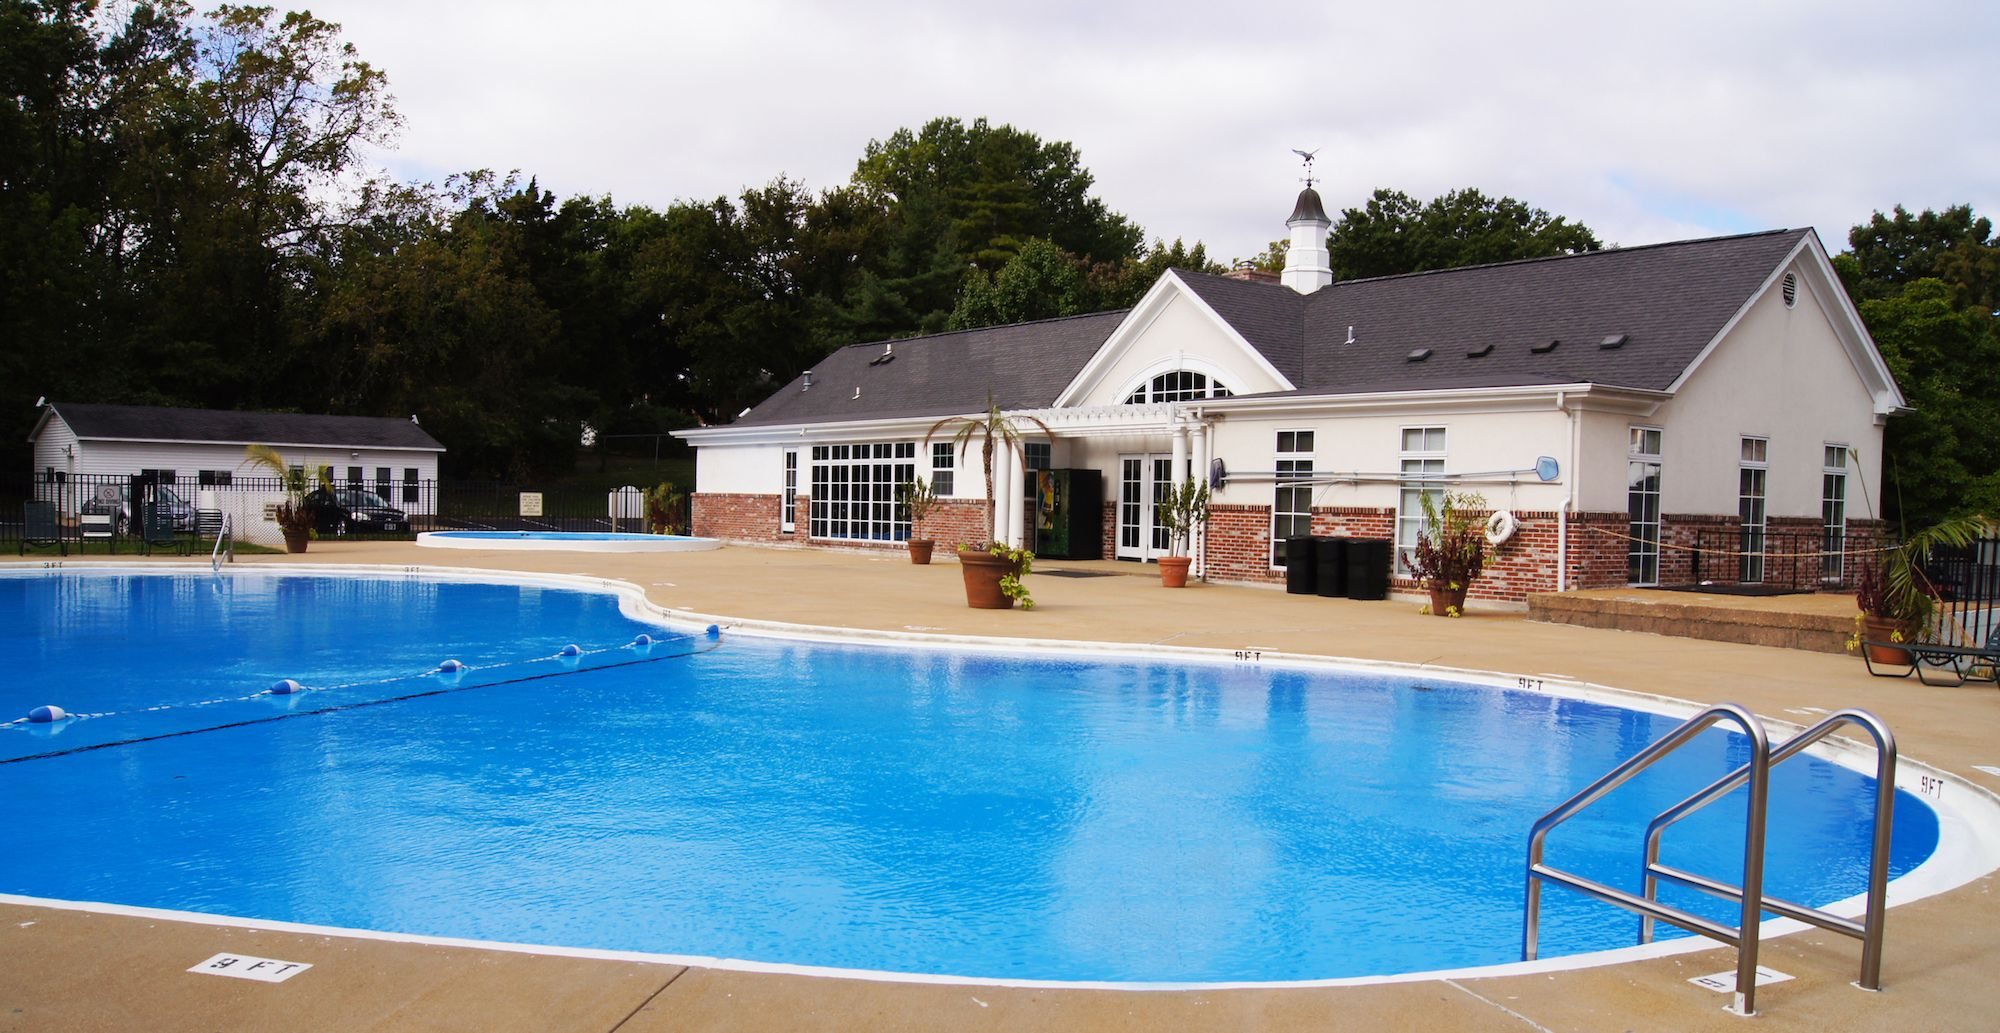 One Bedroom Apartments In St Louis Mo Photo Gallery Covington Place Apartments In St Louis